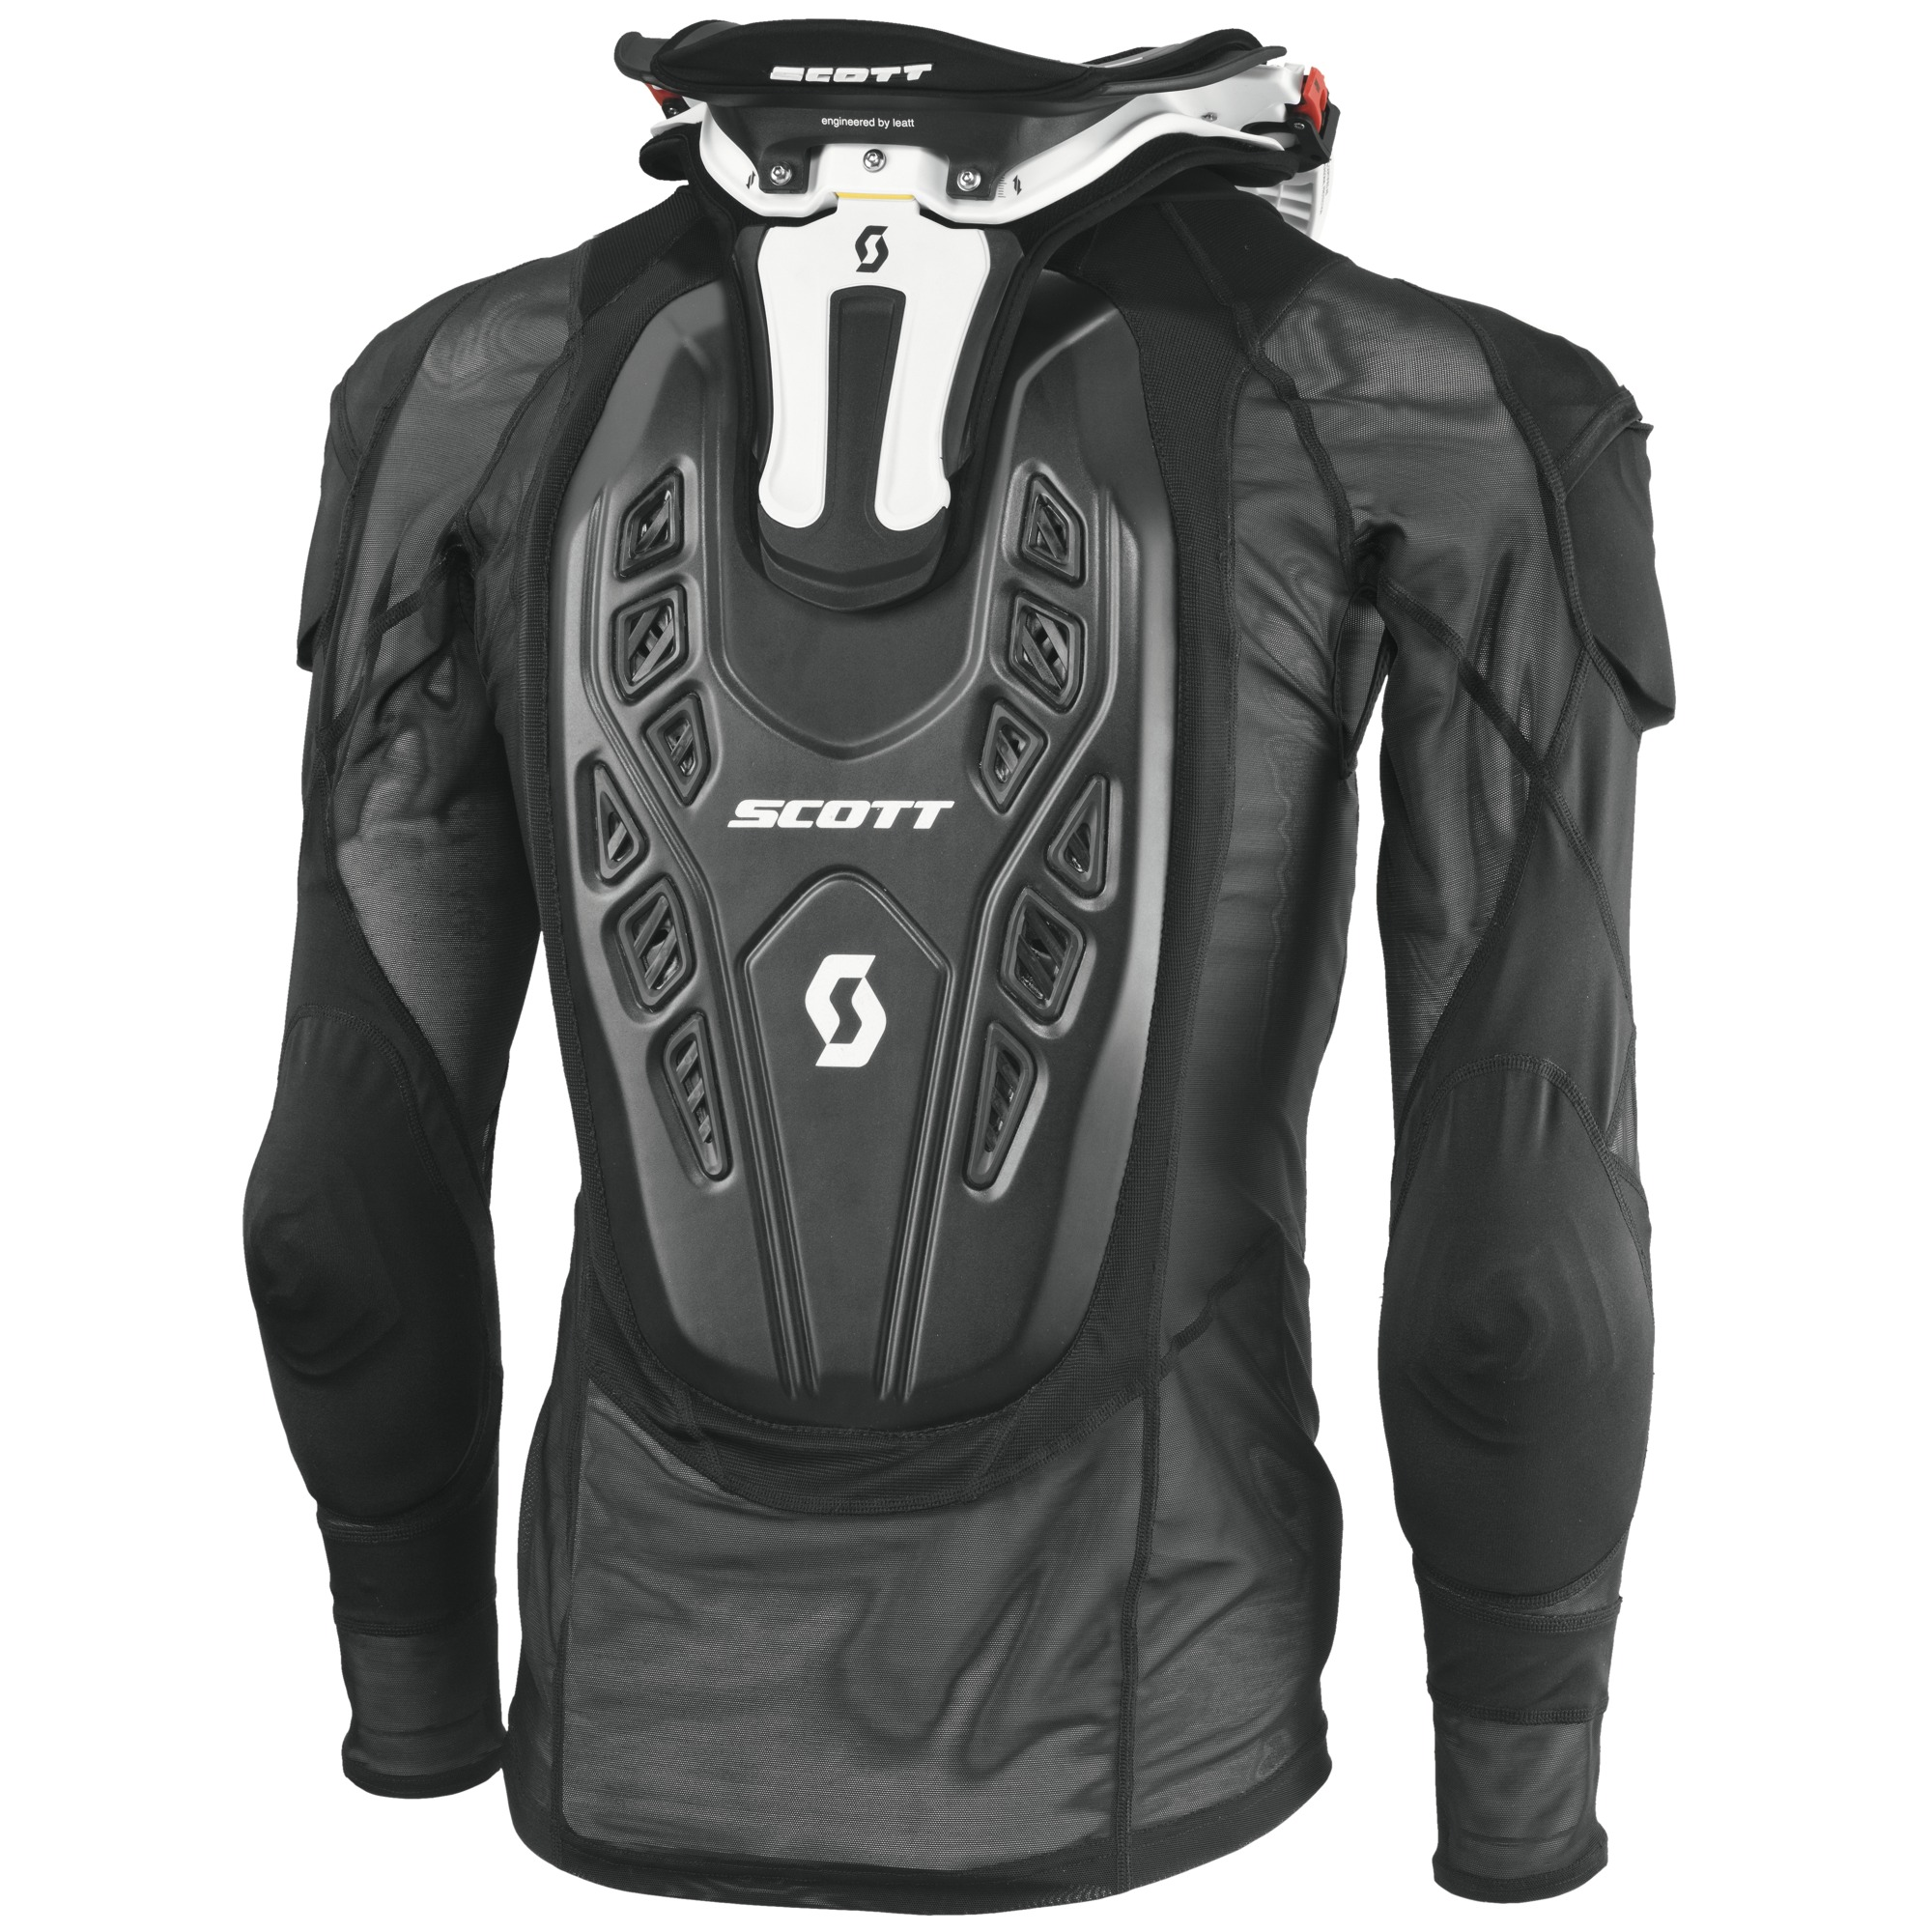 SCOTT Softcon Jacket Protector